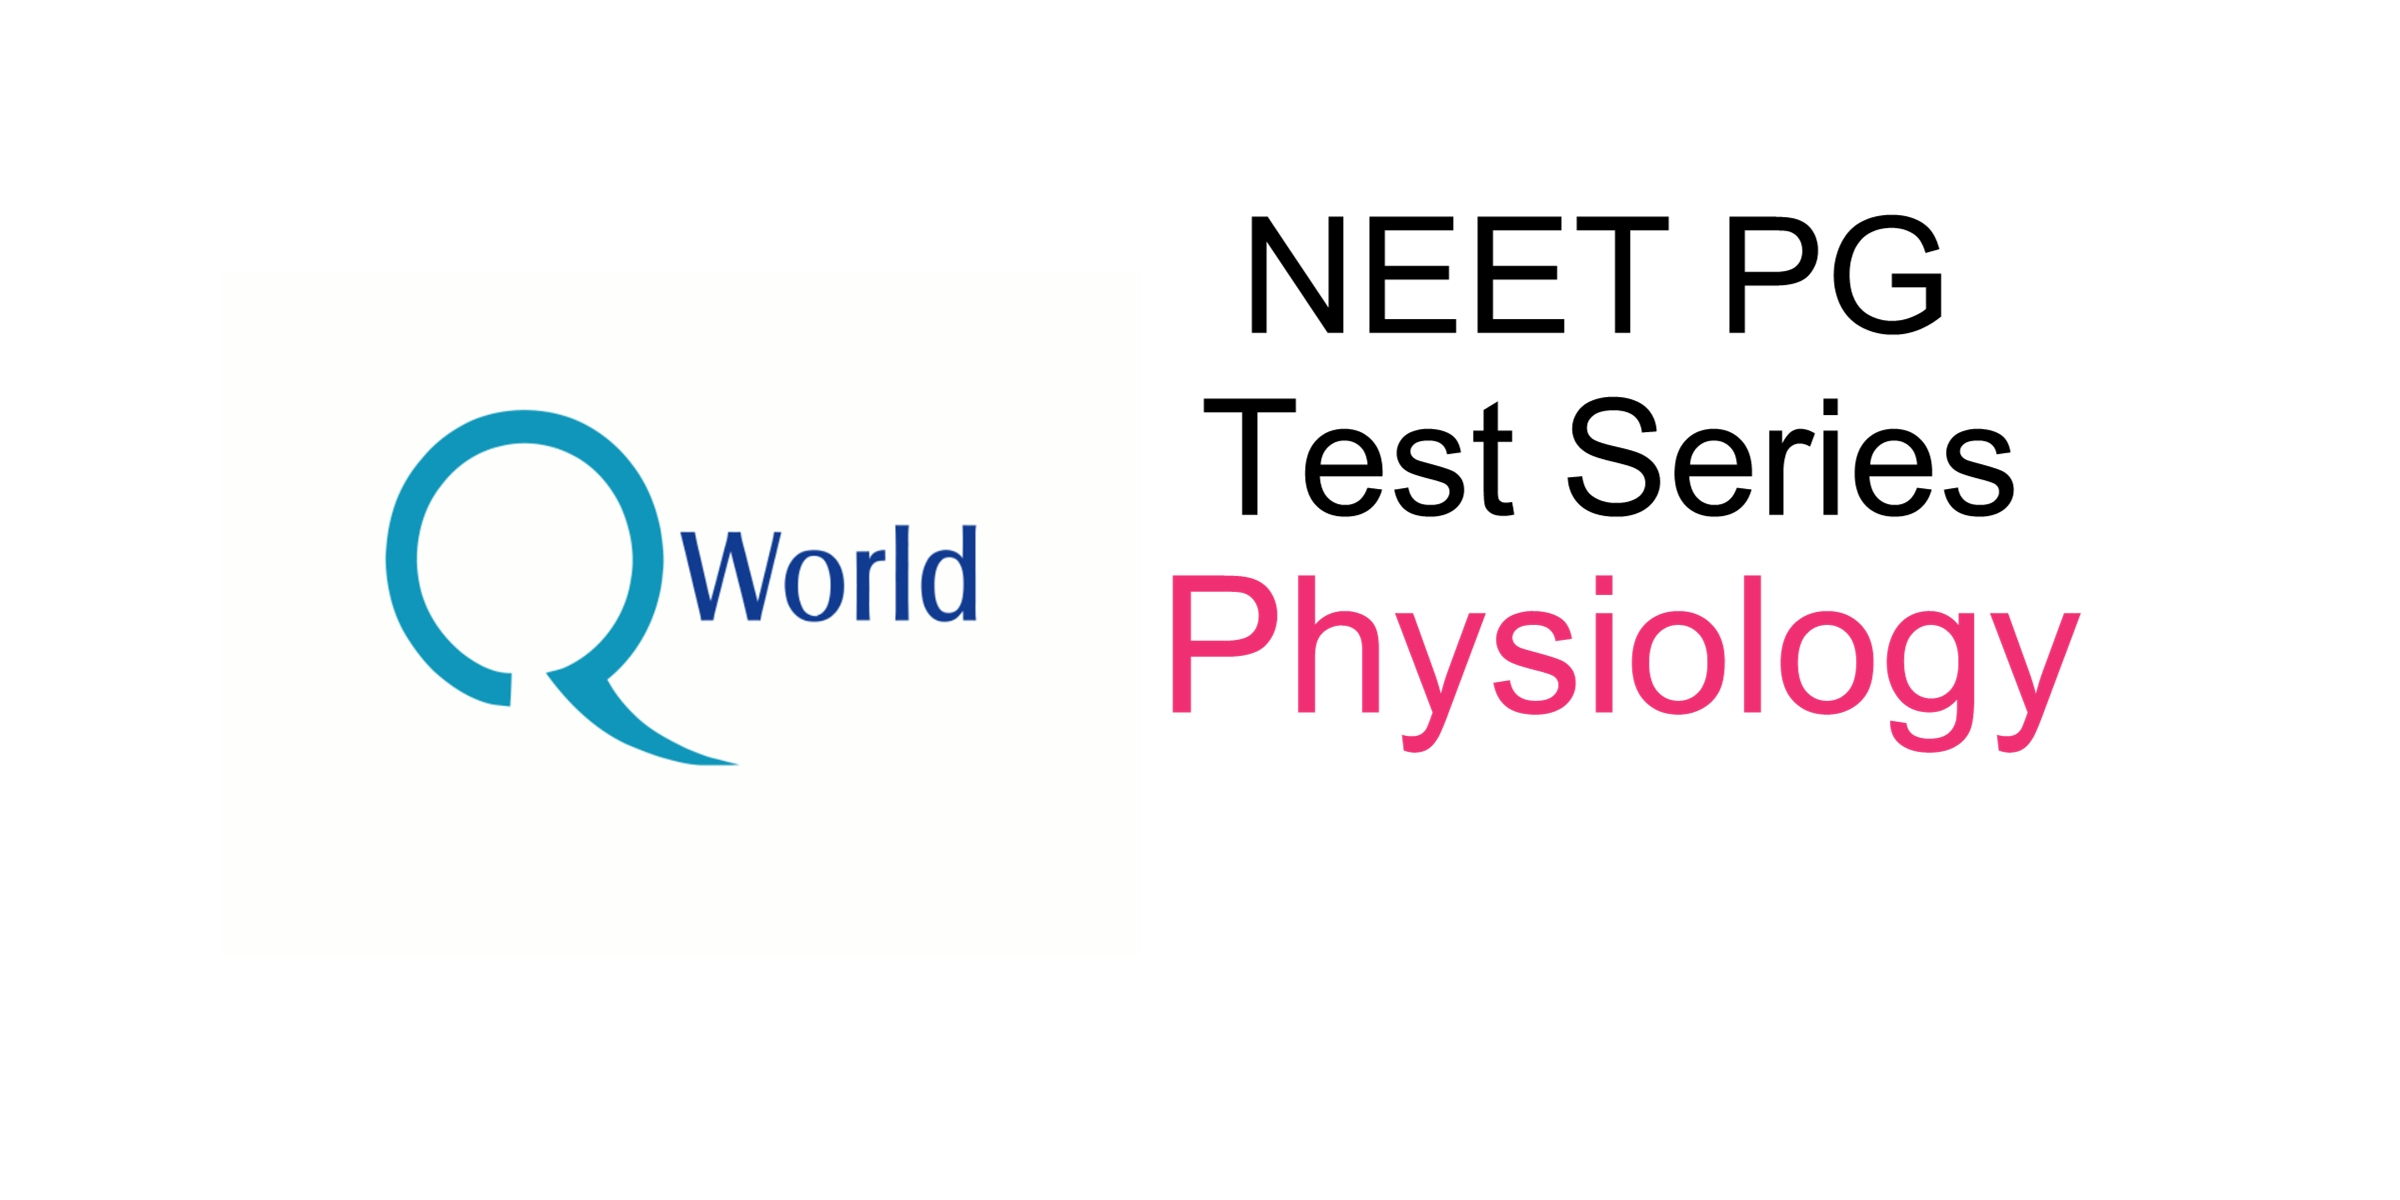 Q world NEET PG Test Series - Physiology Test